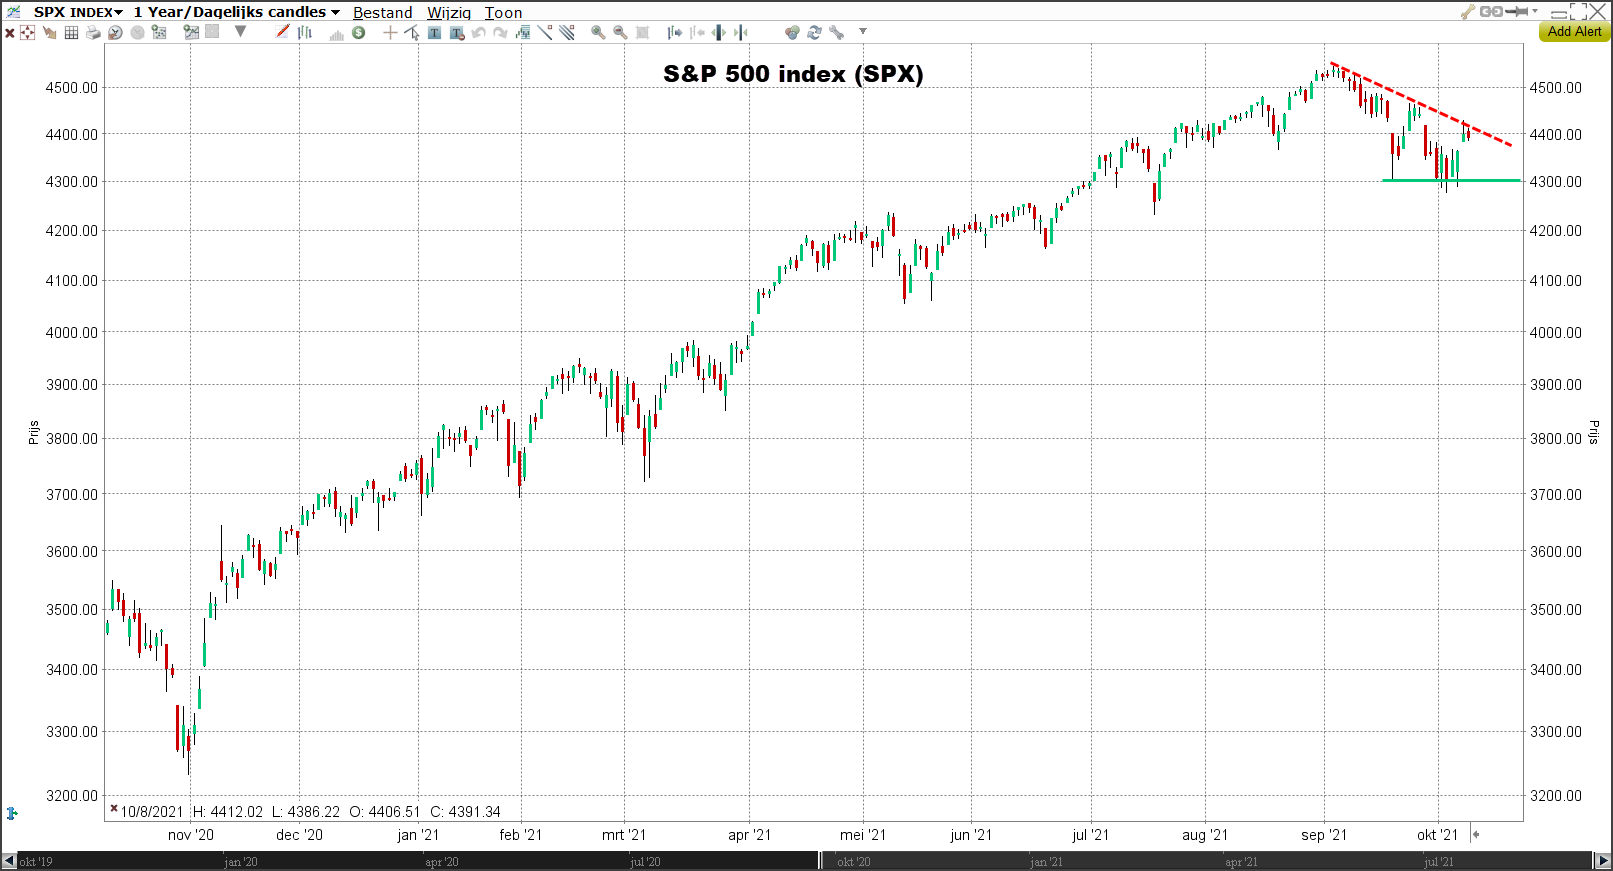 S&P 500 index (SPX) Morning Call